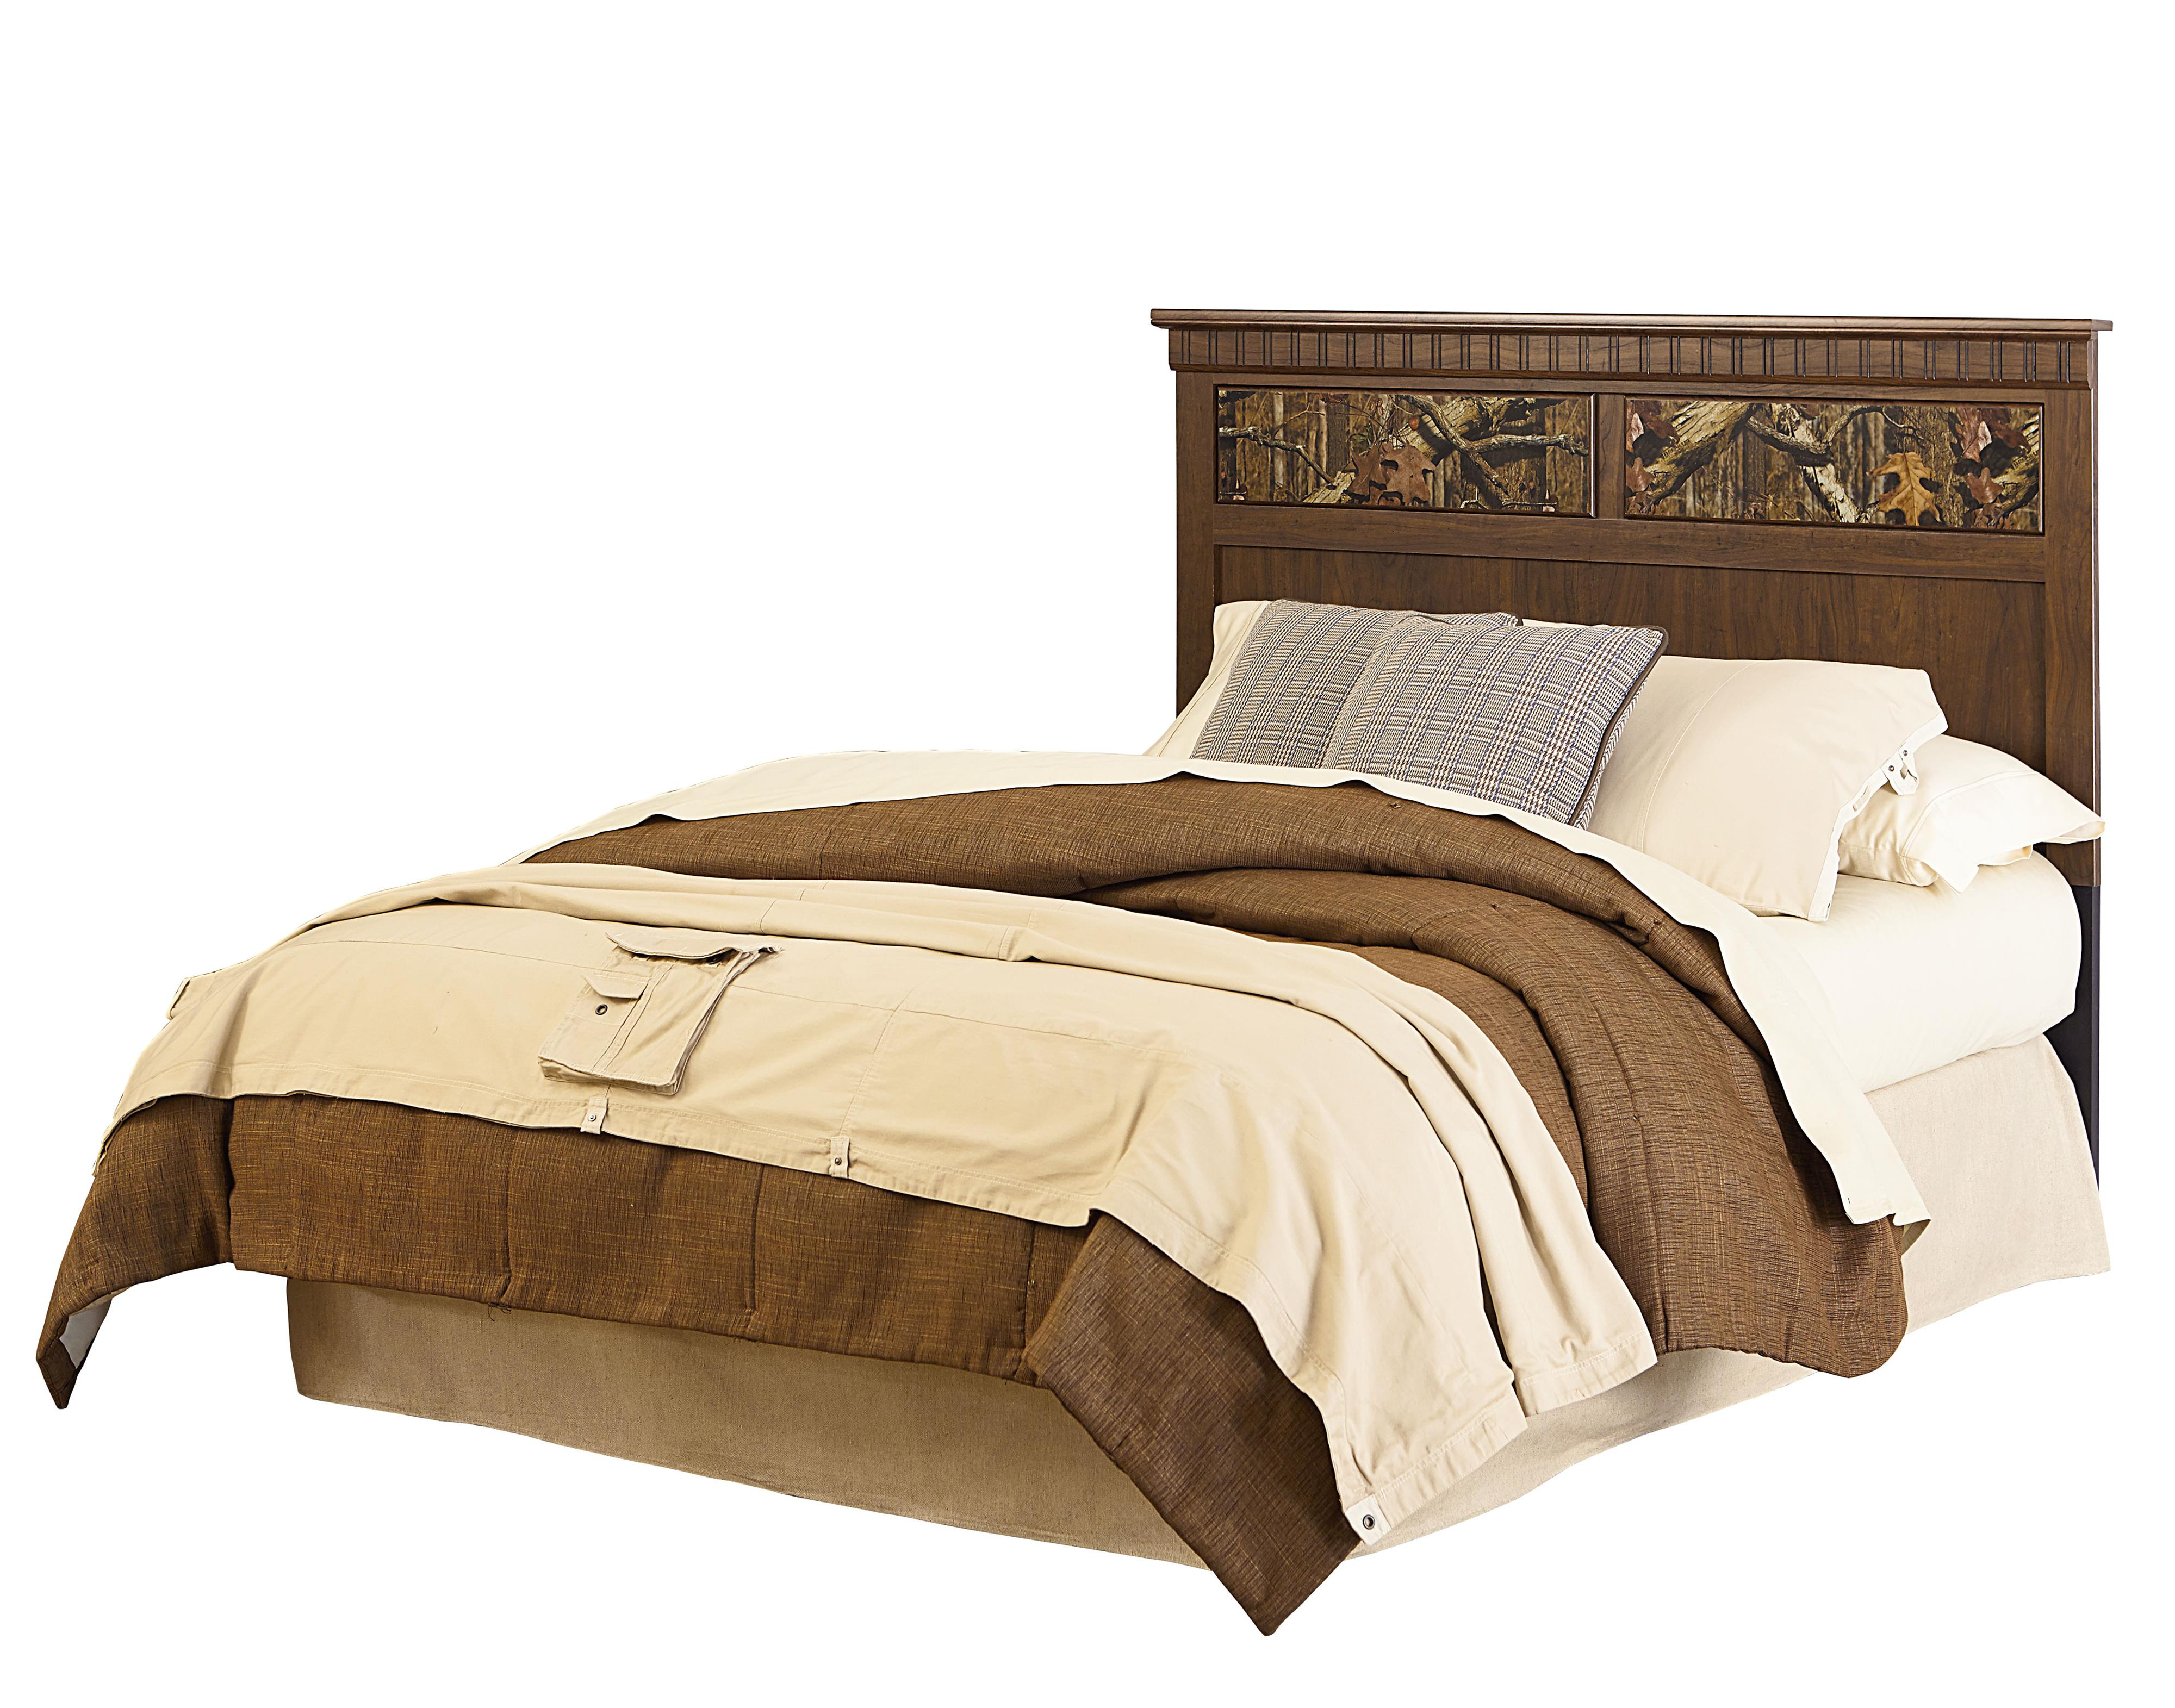 Standard Furniture Solitude Queen Camouflage Paneled Headboard Jacksonville Furniture Mart Headboard